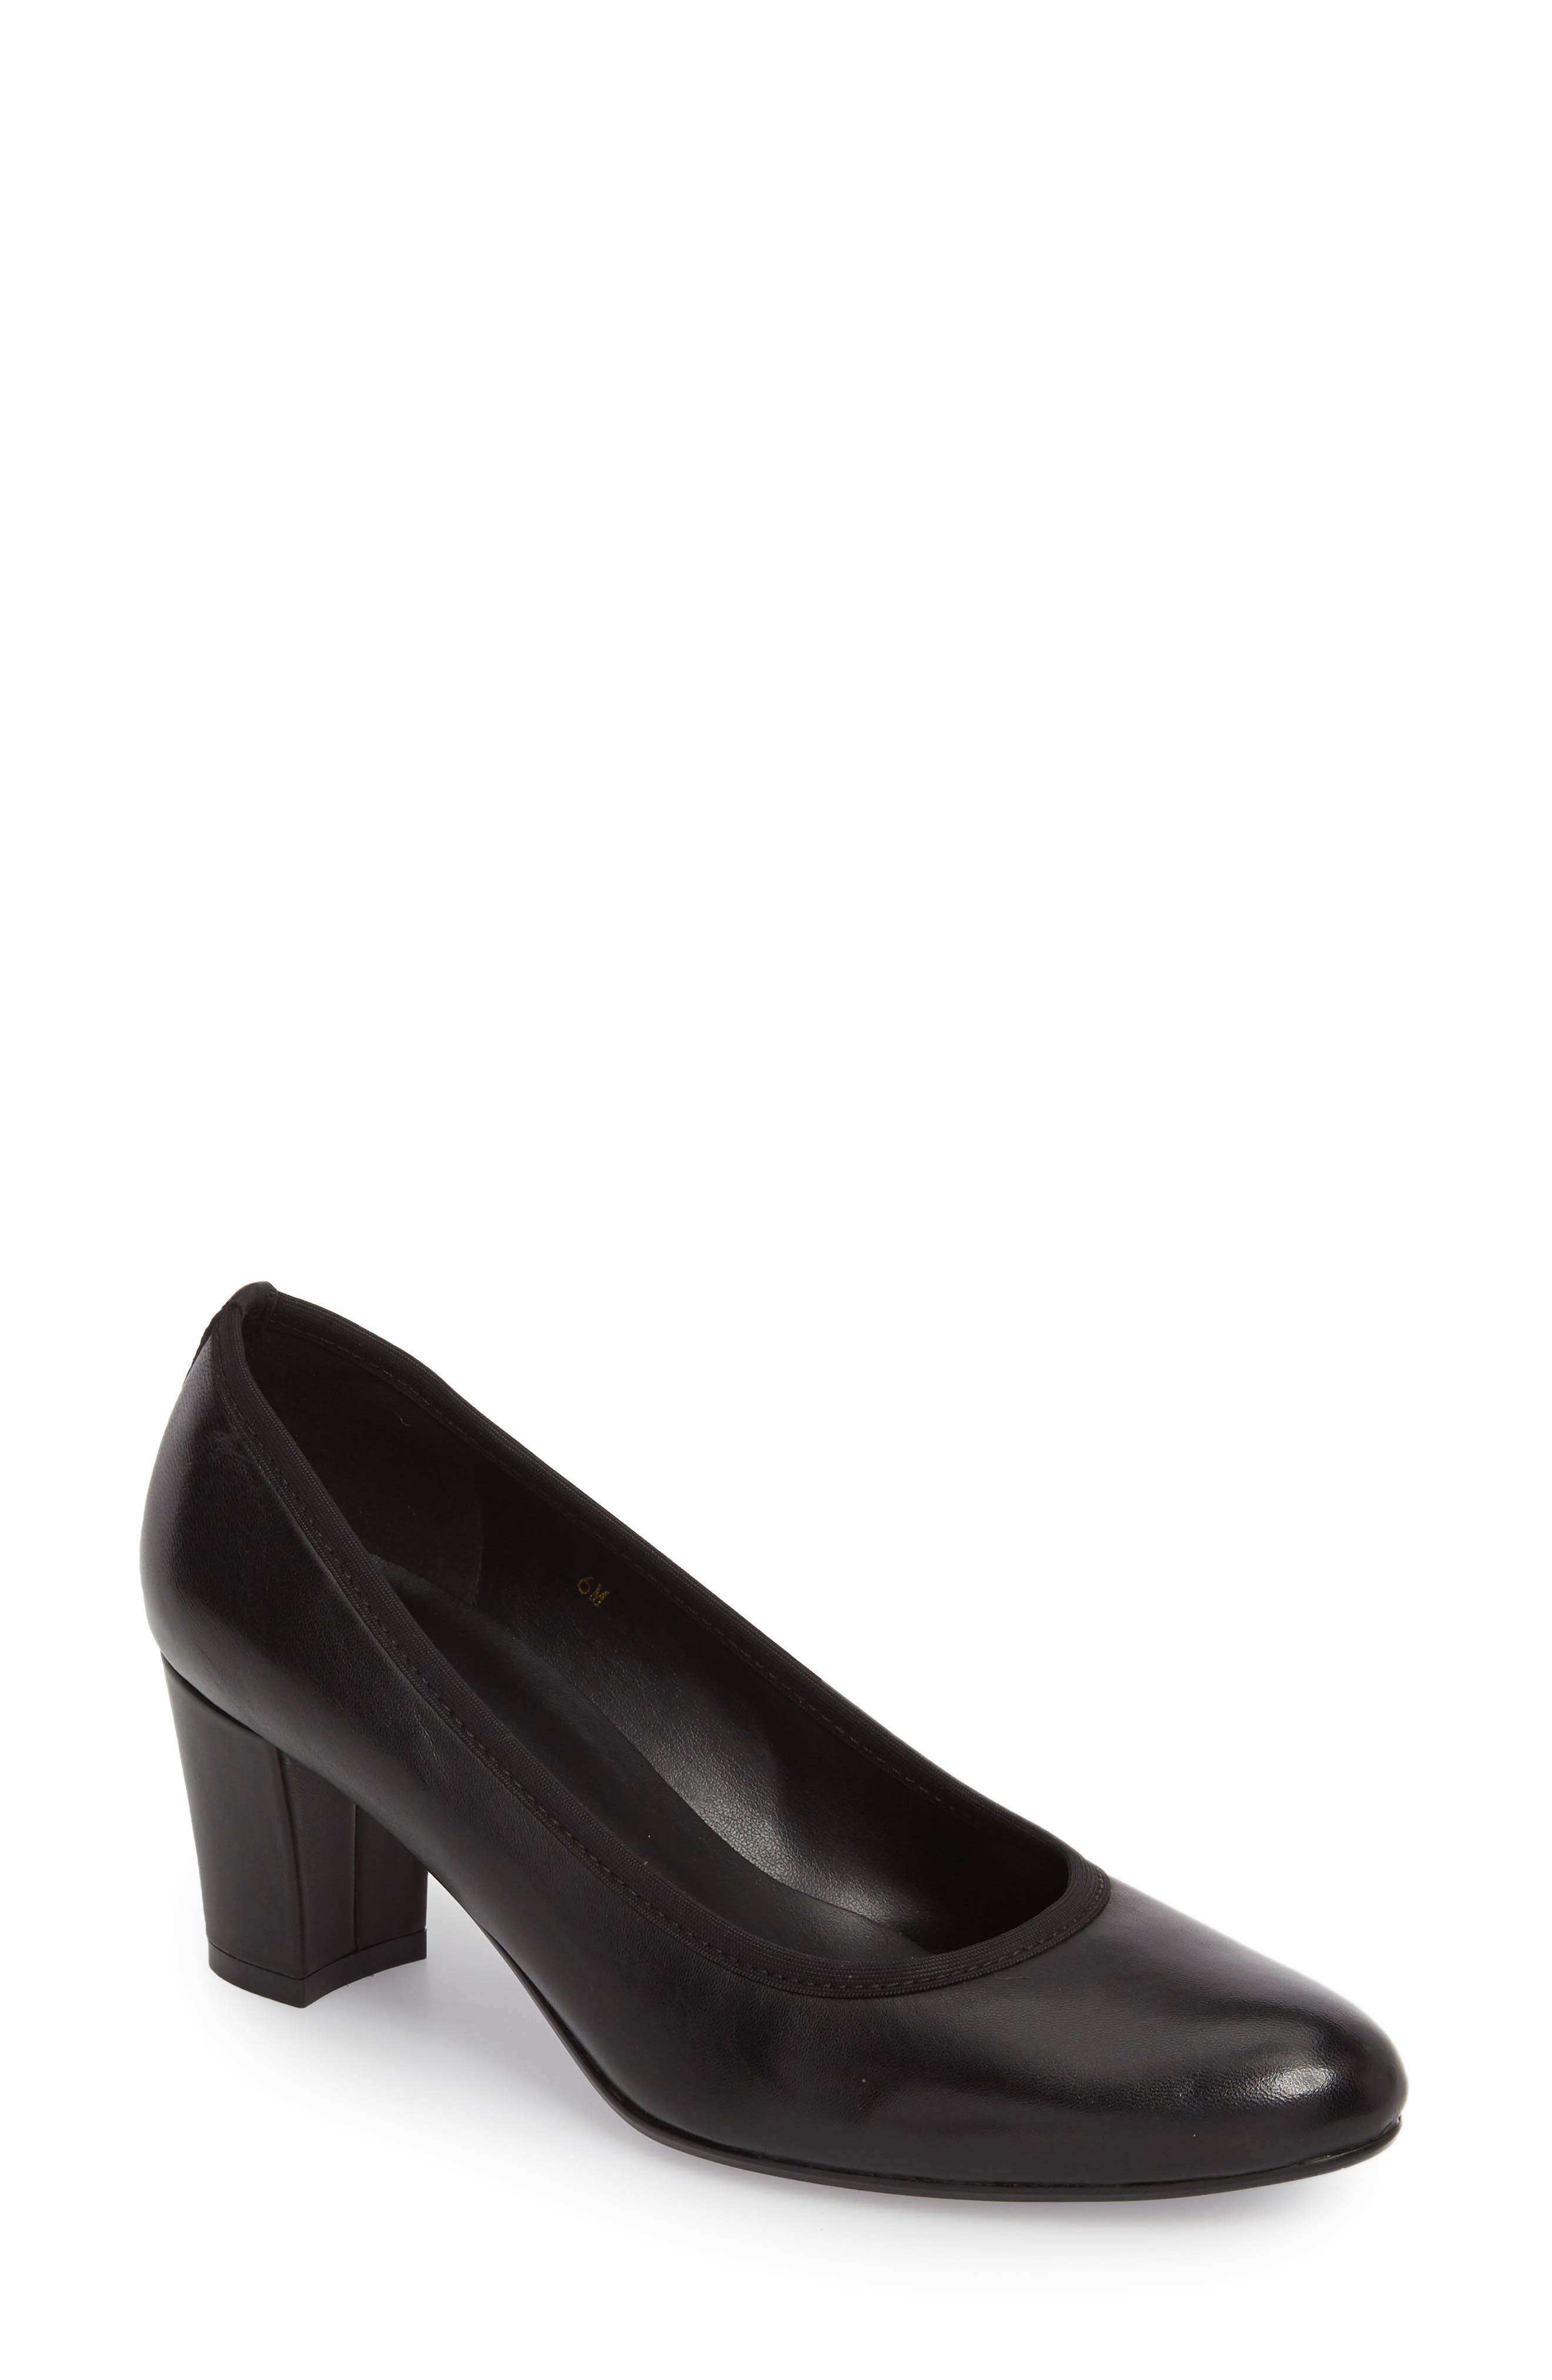 Dacy Pump,                         Main,                         color, BLACK LEATHER